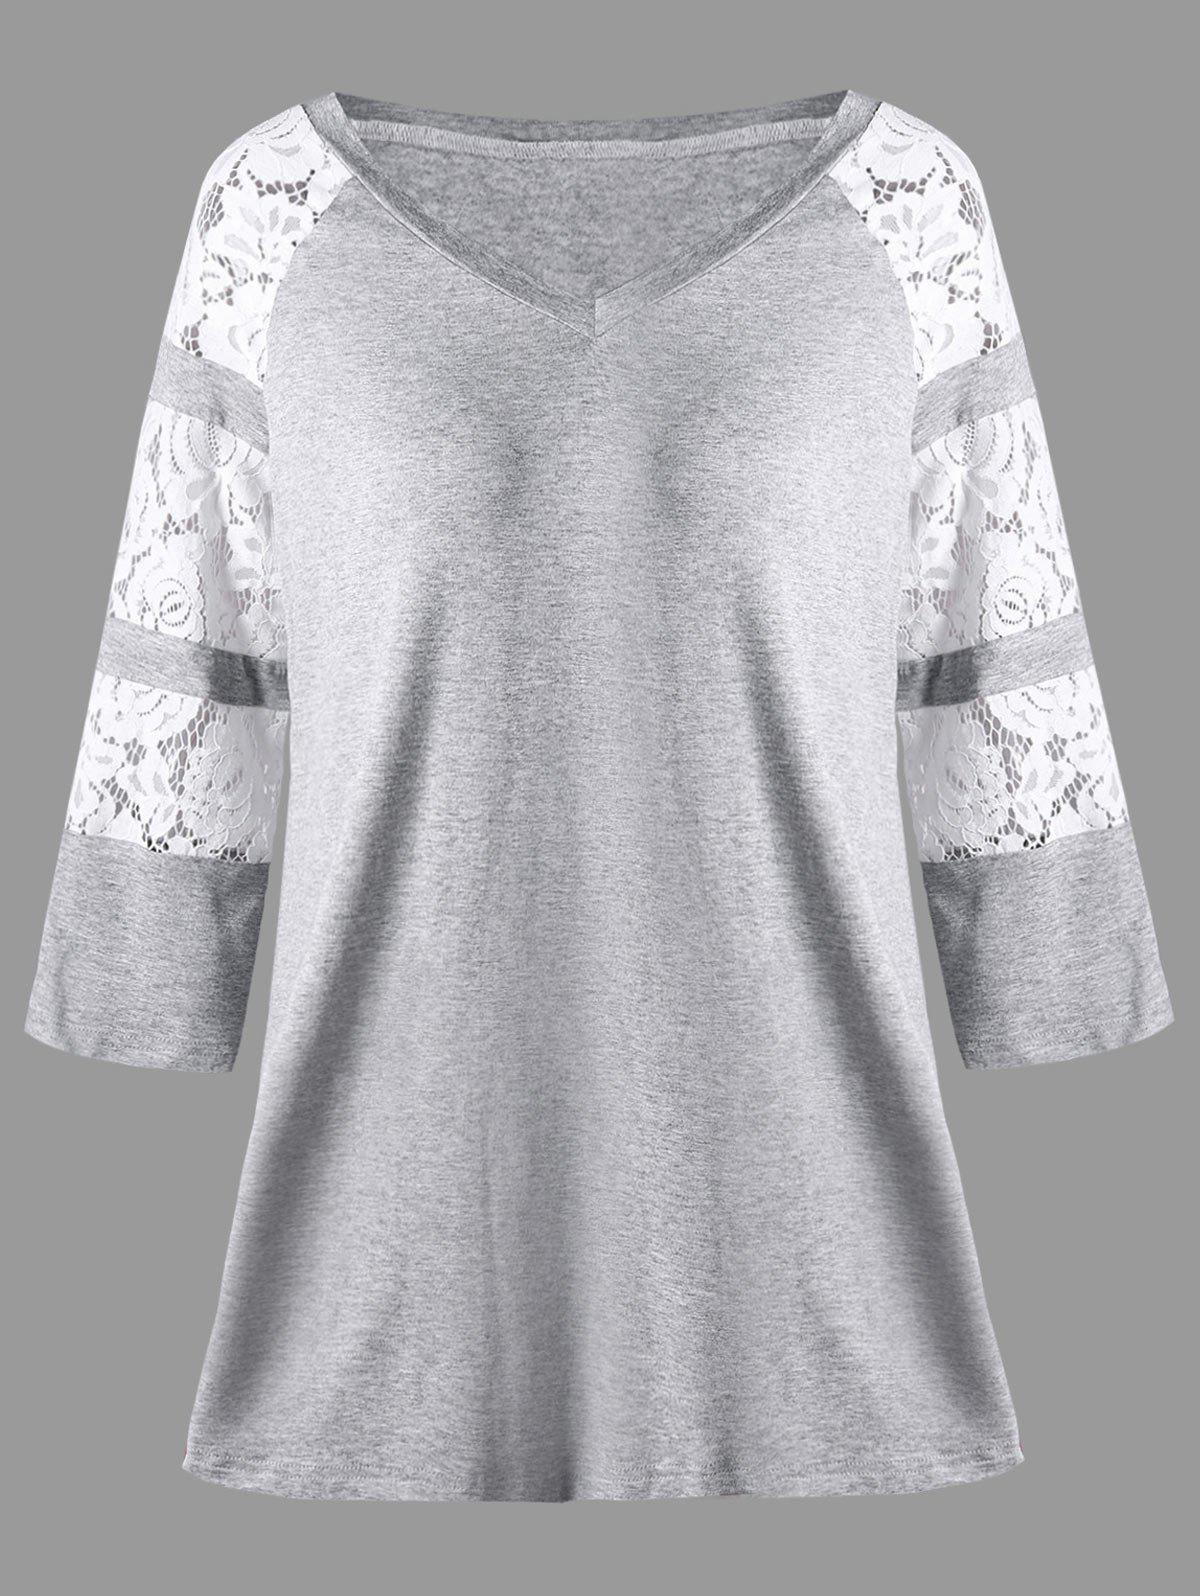 Plus Size Marled Lace Insert V Neck TopWOMEN<br><br>Size: 5XL; Color: GRAY; Material: Rayon,Spandex; Shirt Length: Long; Sleeve Length: Three Quarter; Collar: V-Neck; Style: Casual; Season: Fall,Spring; Embellishment: Lace; Pattern Type: Floral; Weight: 0.2700kg; Package Contents: 1 x T-shirt;